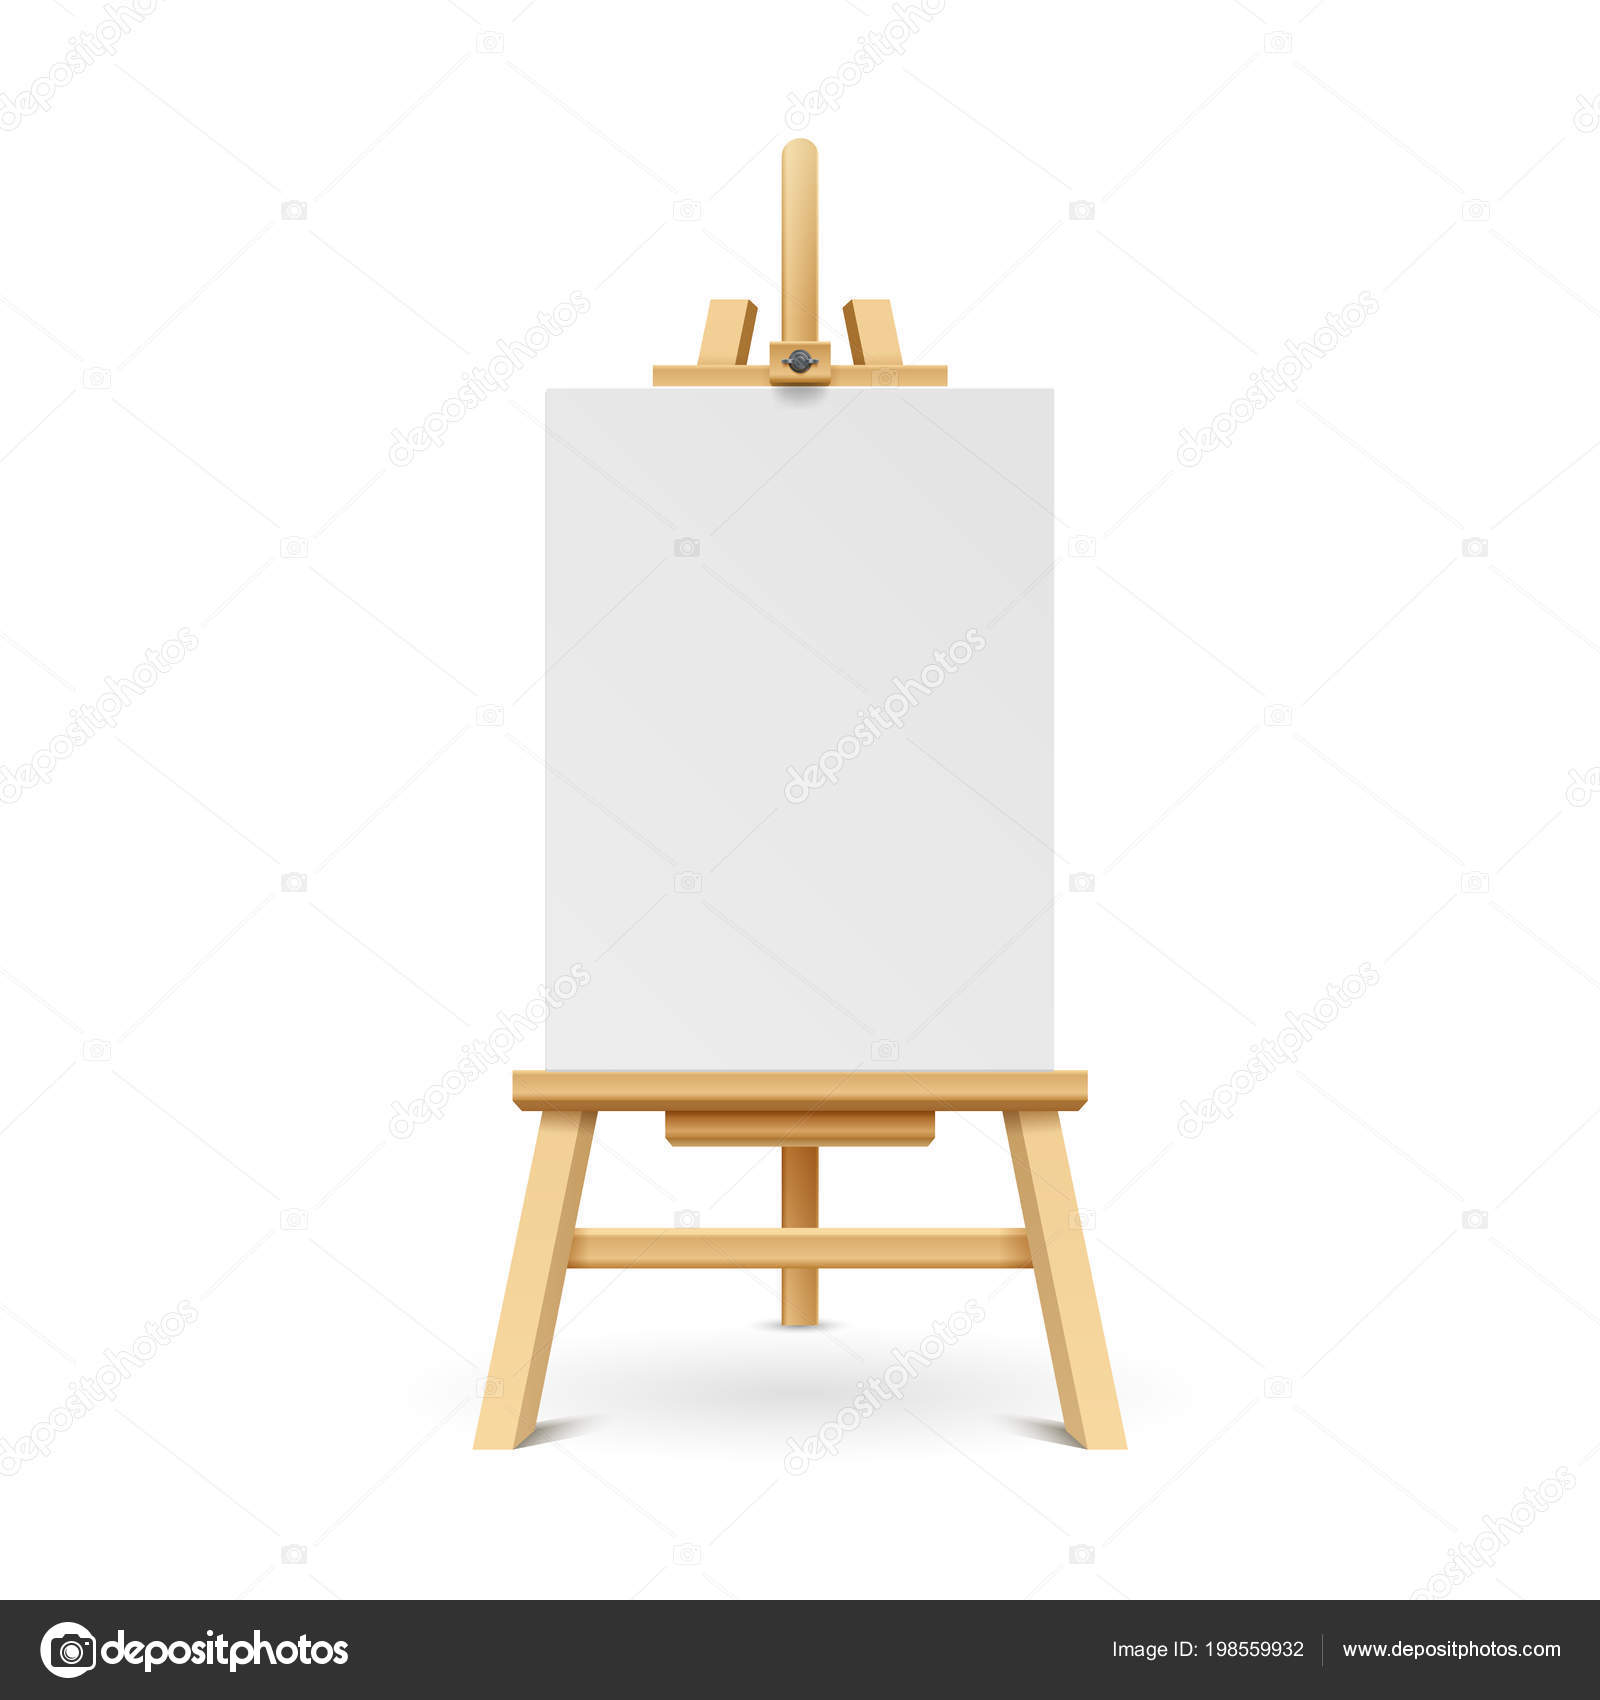 Wooden paint board with white empty paper frame. Art easel stand ...